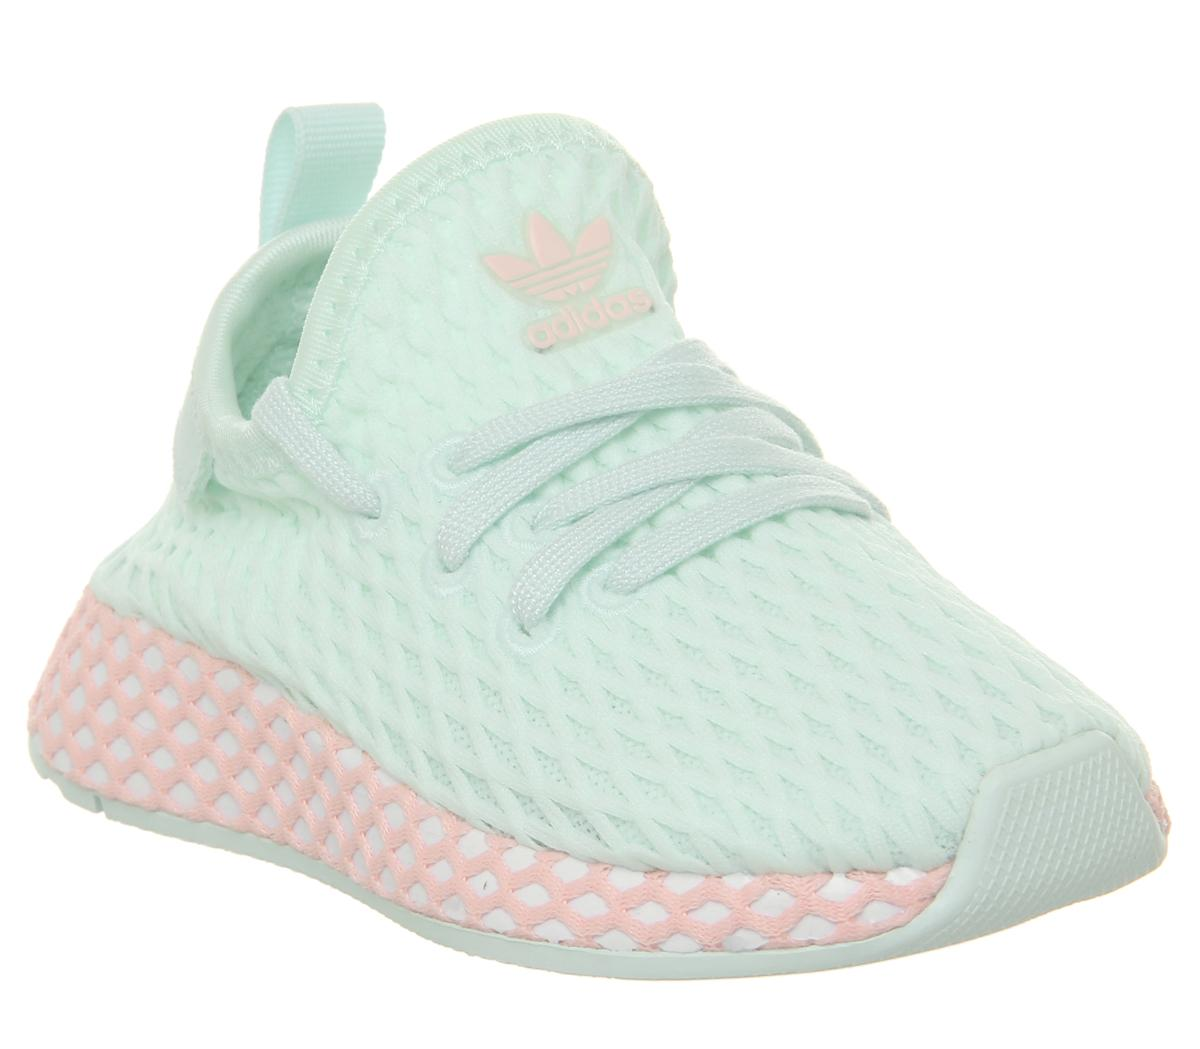 adidas Deerupt Infant Trainers Ice Mint Clear Orange - Kids Trainers